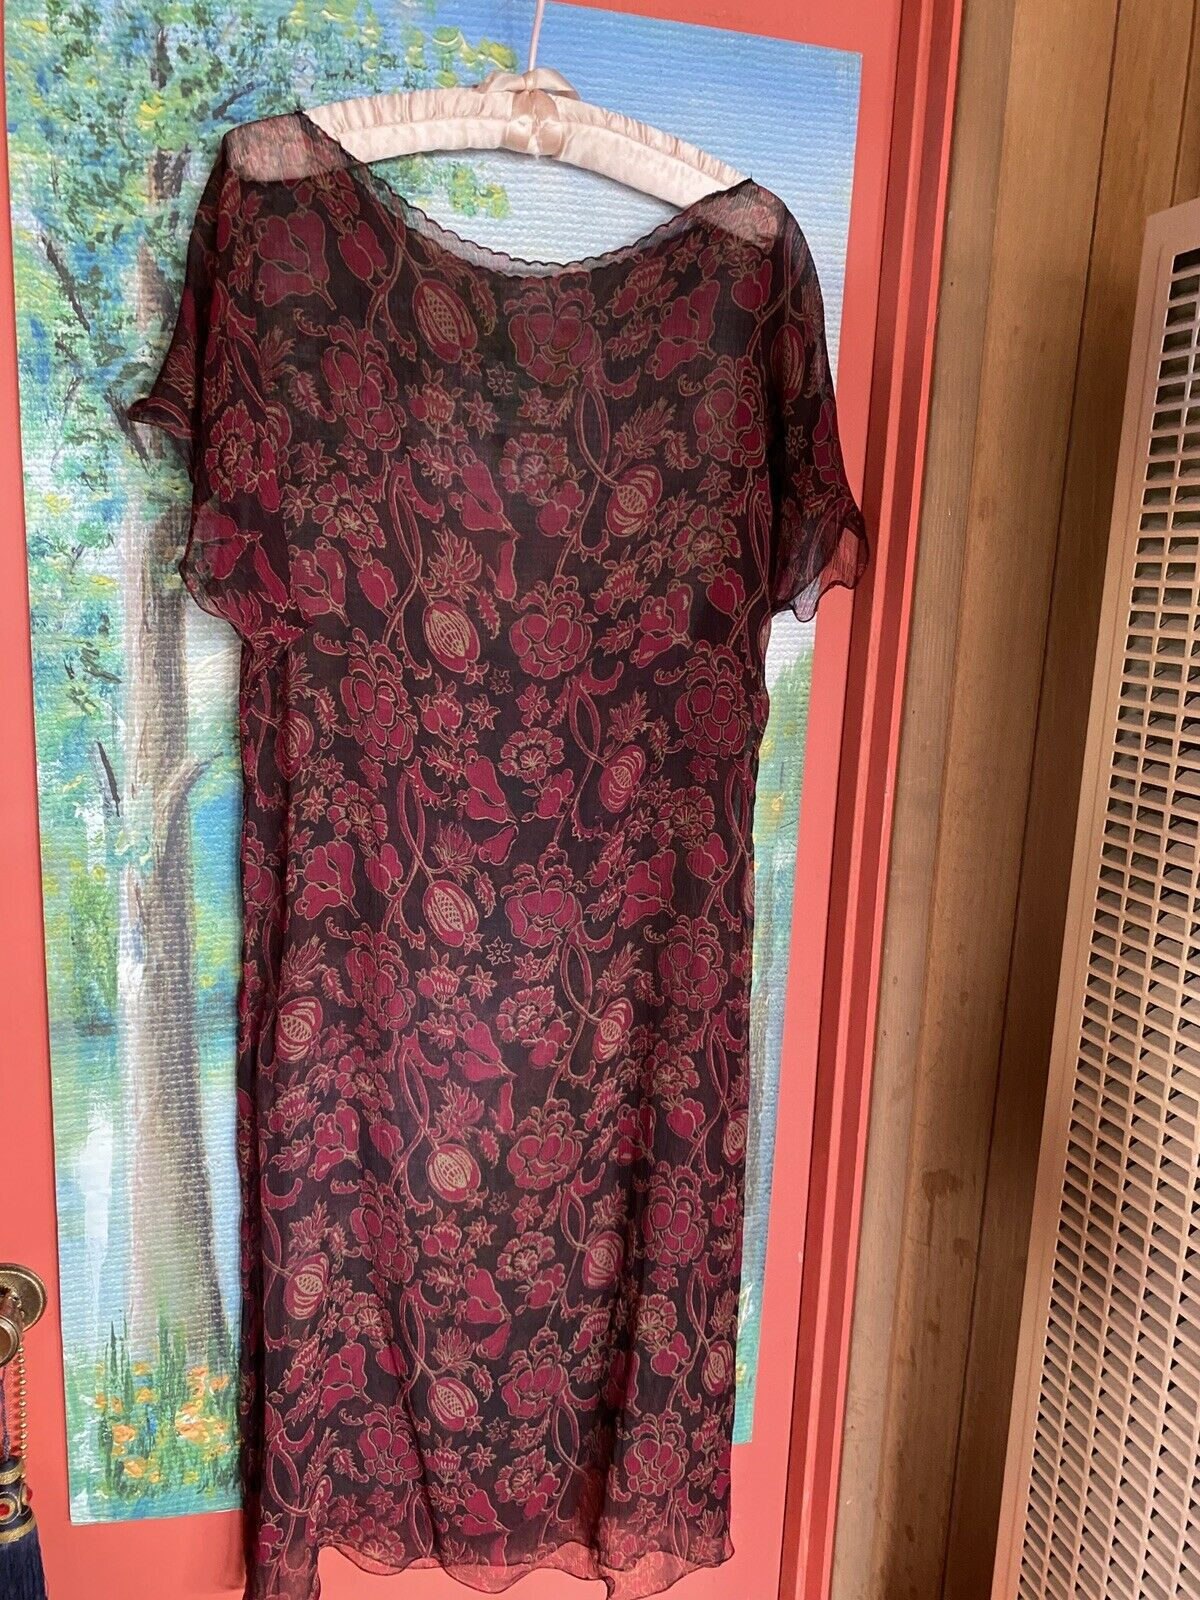 '1920's look sheer dress roses and buds and leaves